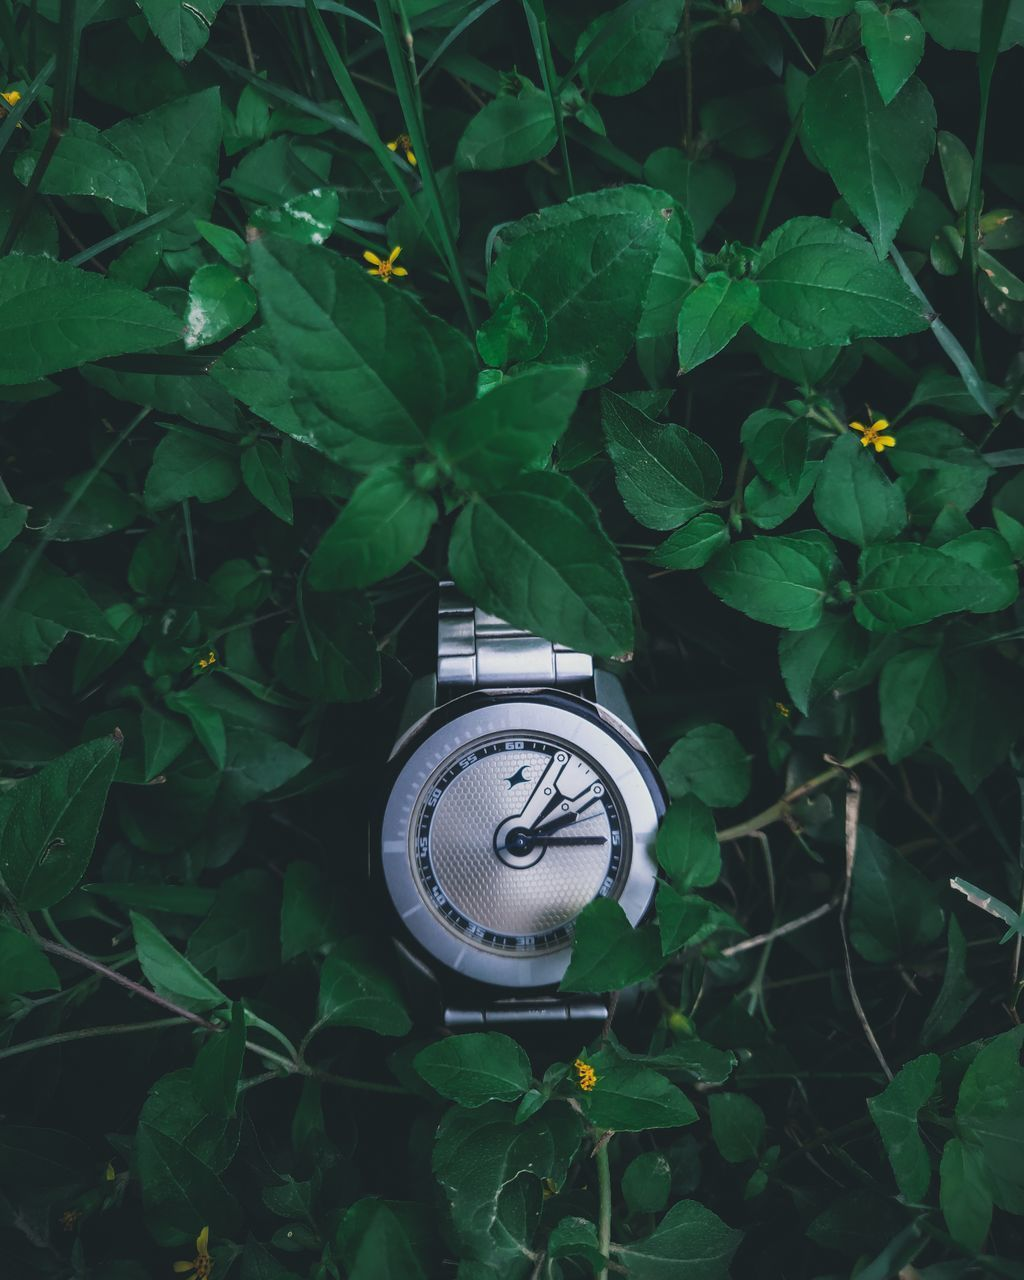 HIGH ANGLE VIEW OF CLOCK ON GREEN PLANT